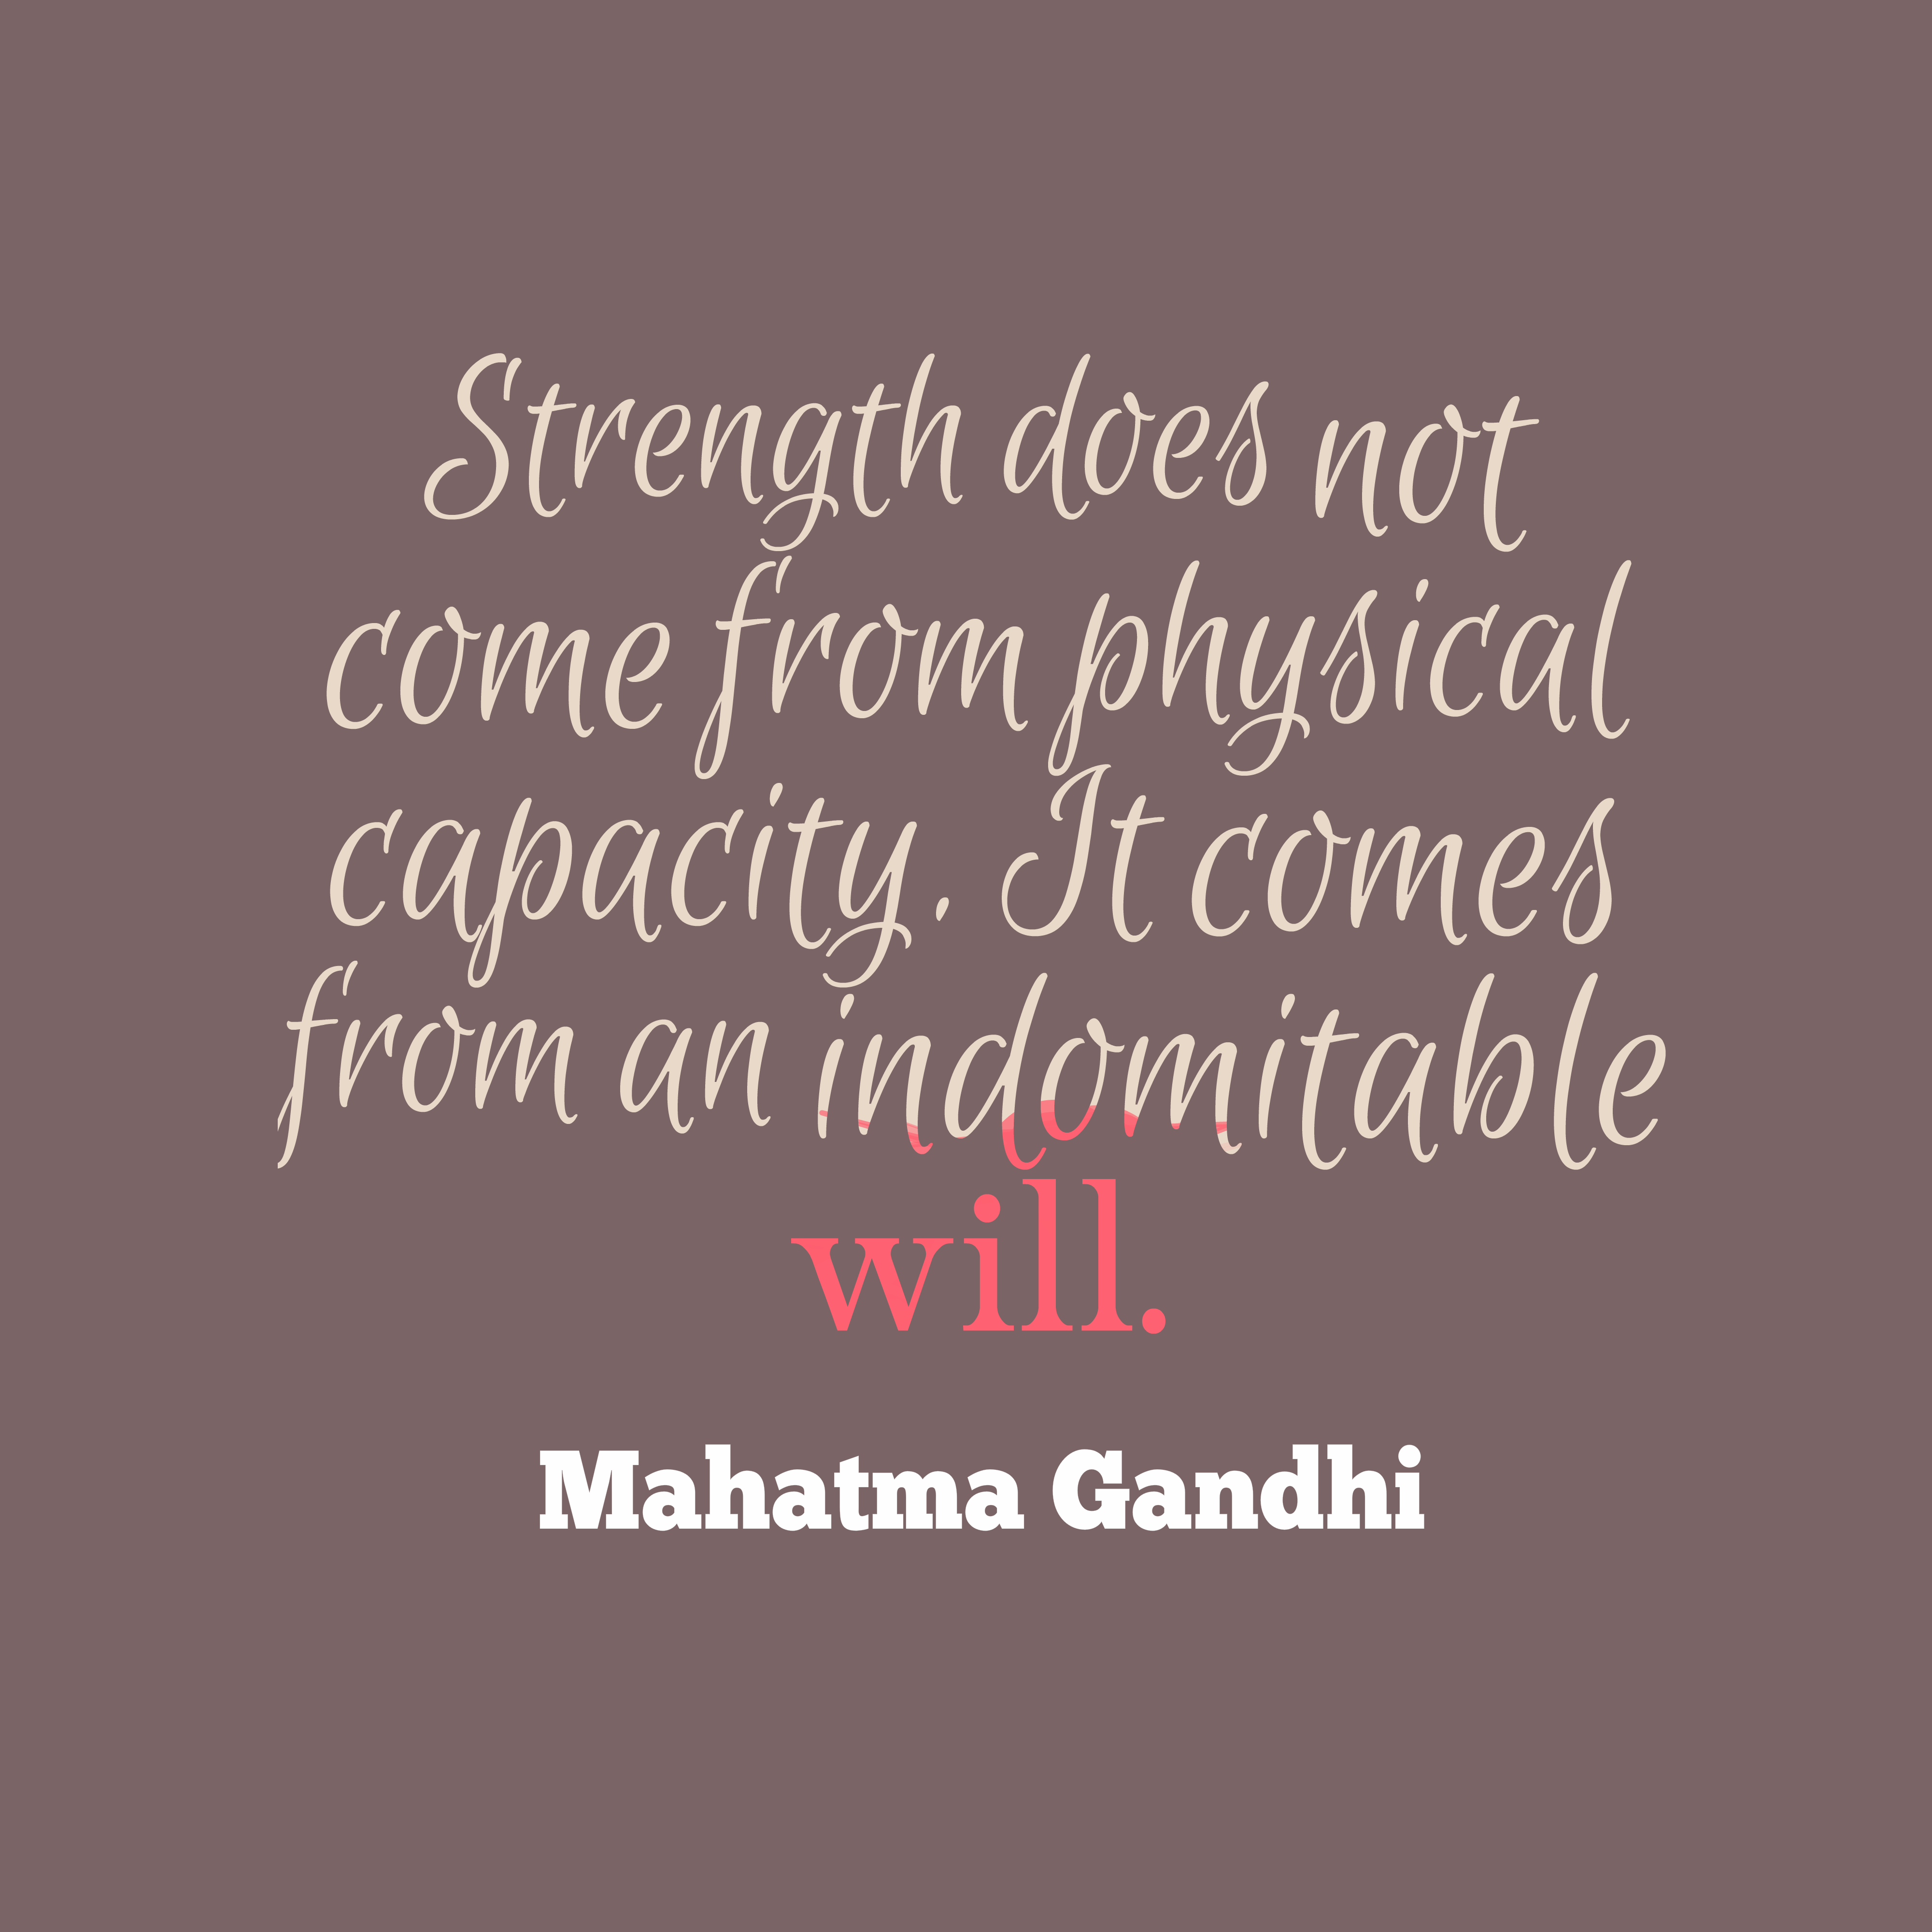 Mahatma gandhi quote about strength